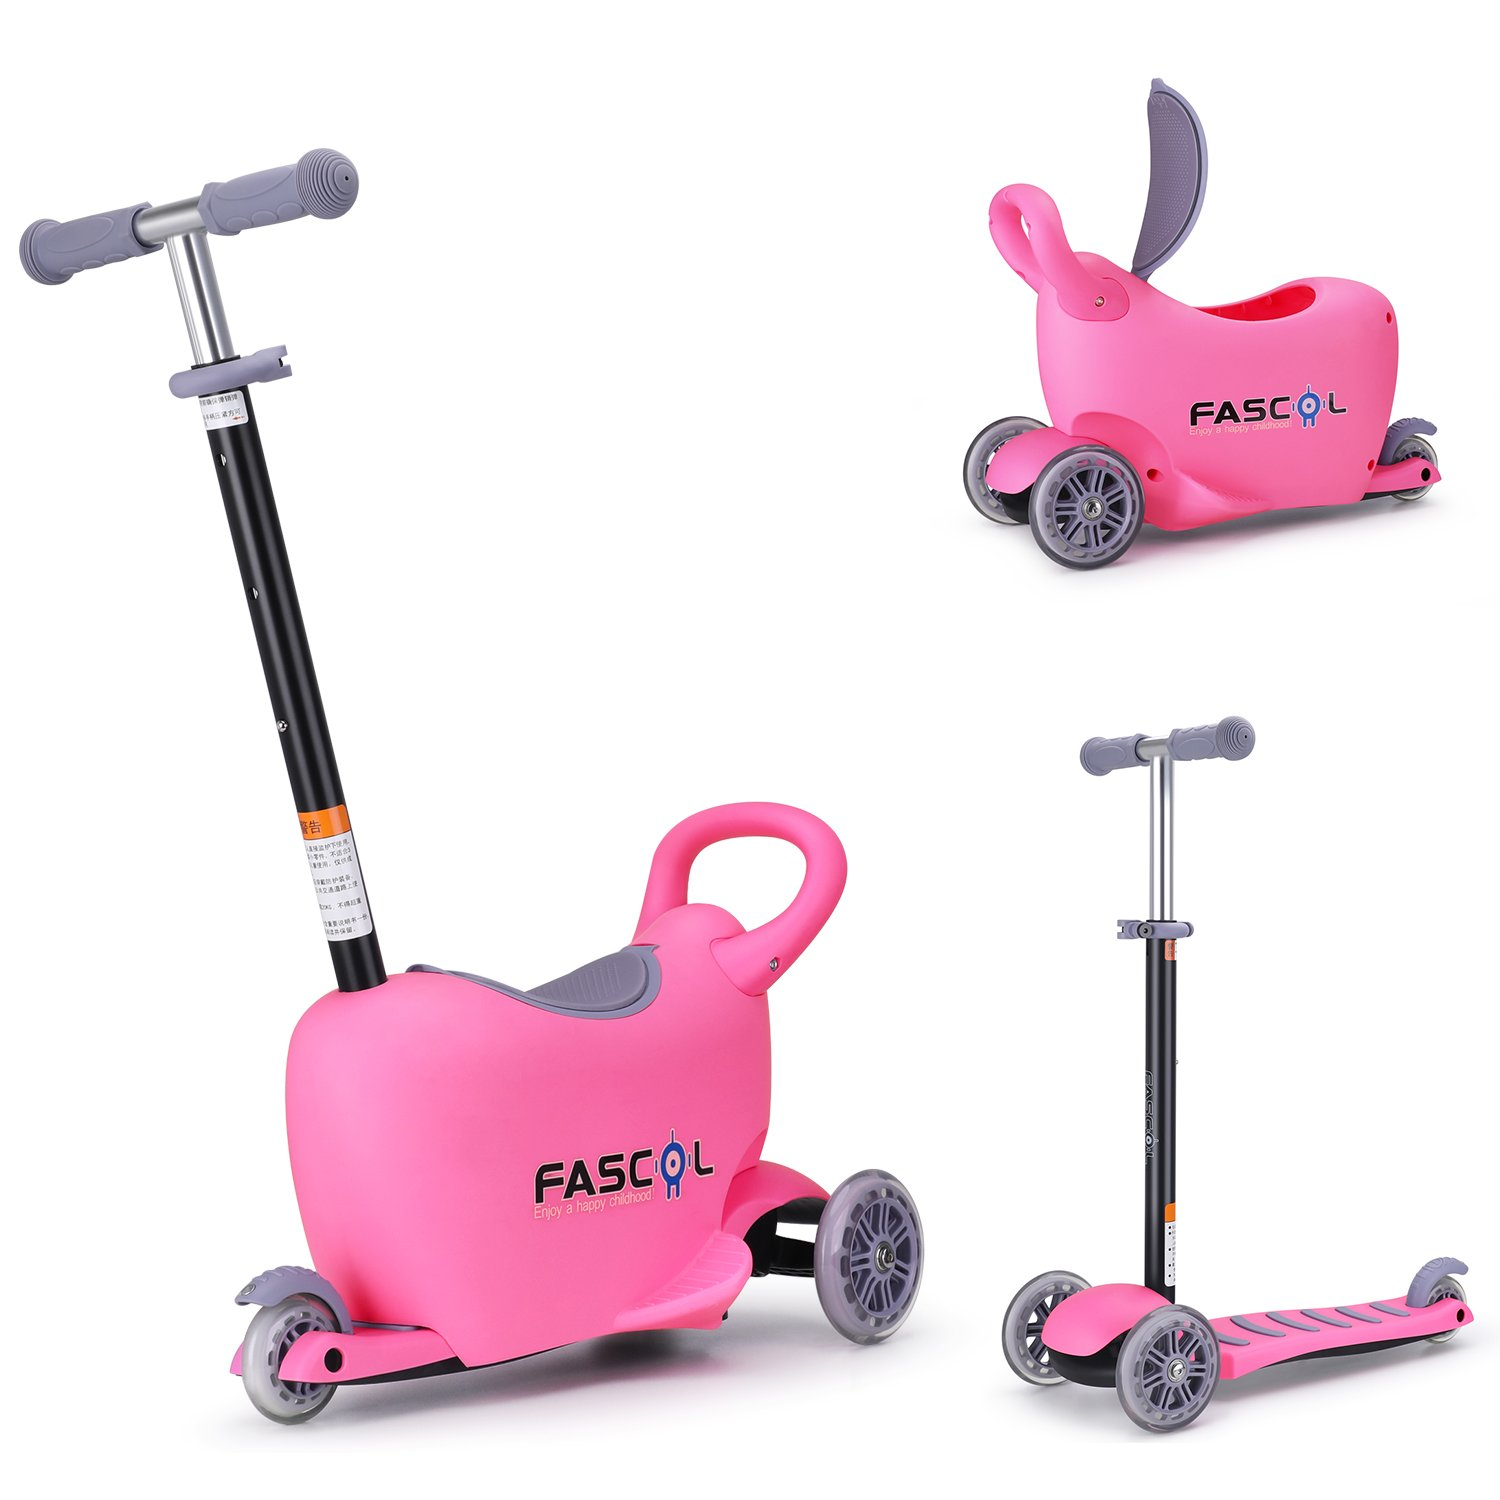 Kinderkoffer Scooter - Fascol 3 in 1 Scooter